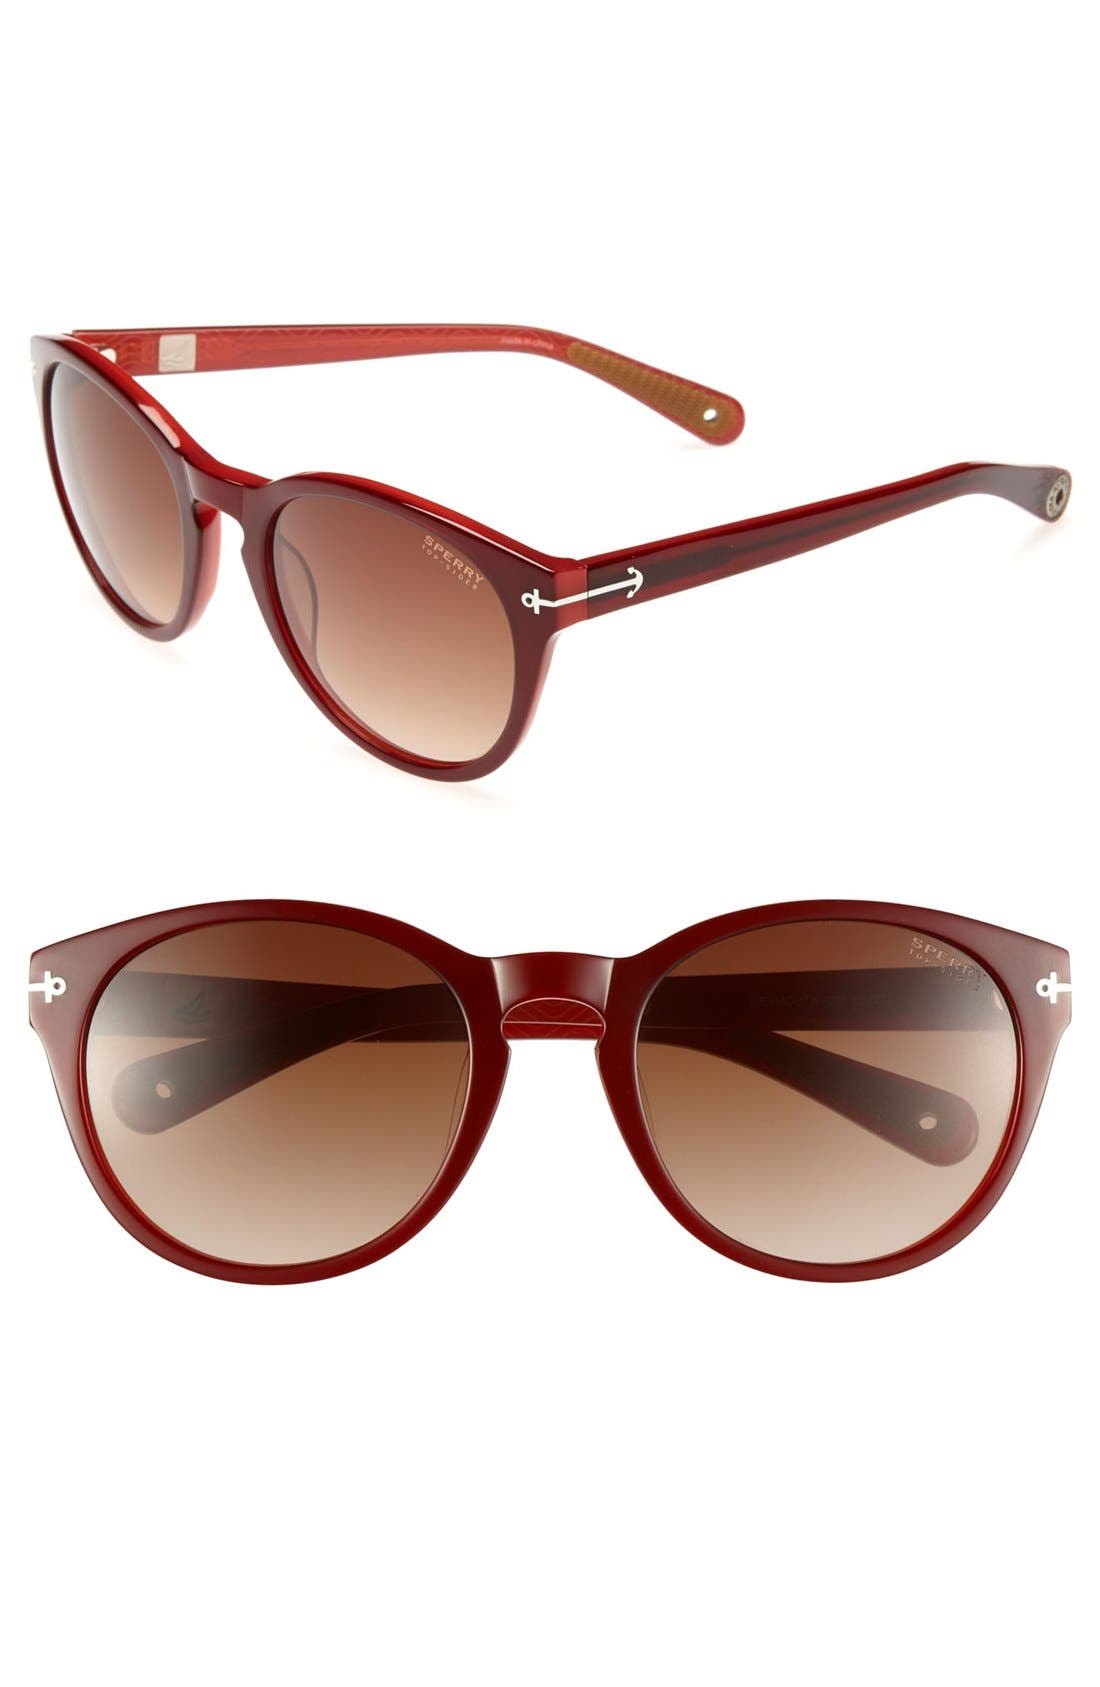 Main Image - Sperry Top-Sider® 'Weymouth' 55mm Sunglasses (Online Only)